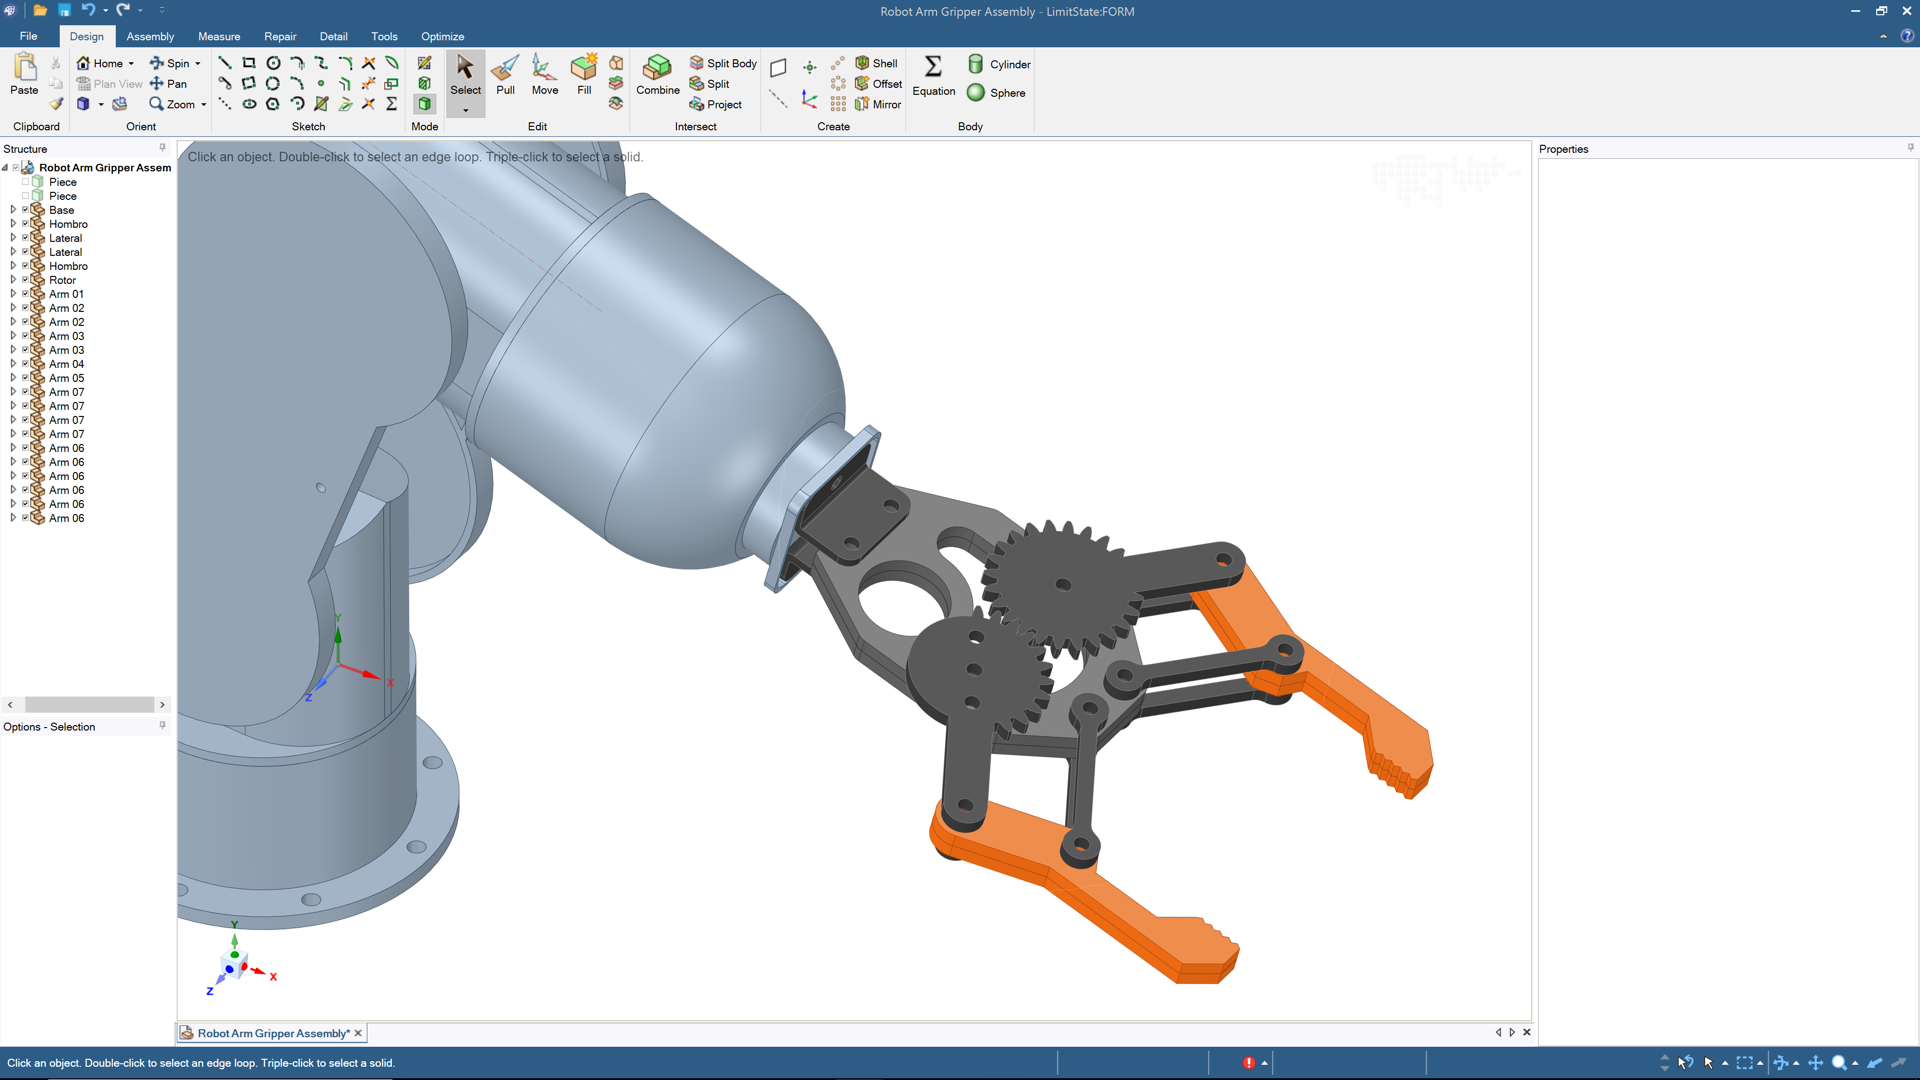 Case Study: Robot End of Arm Tool